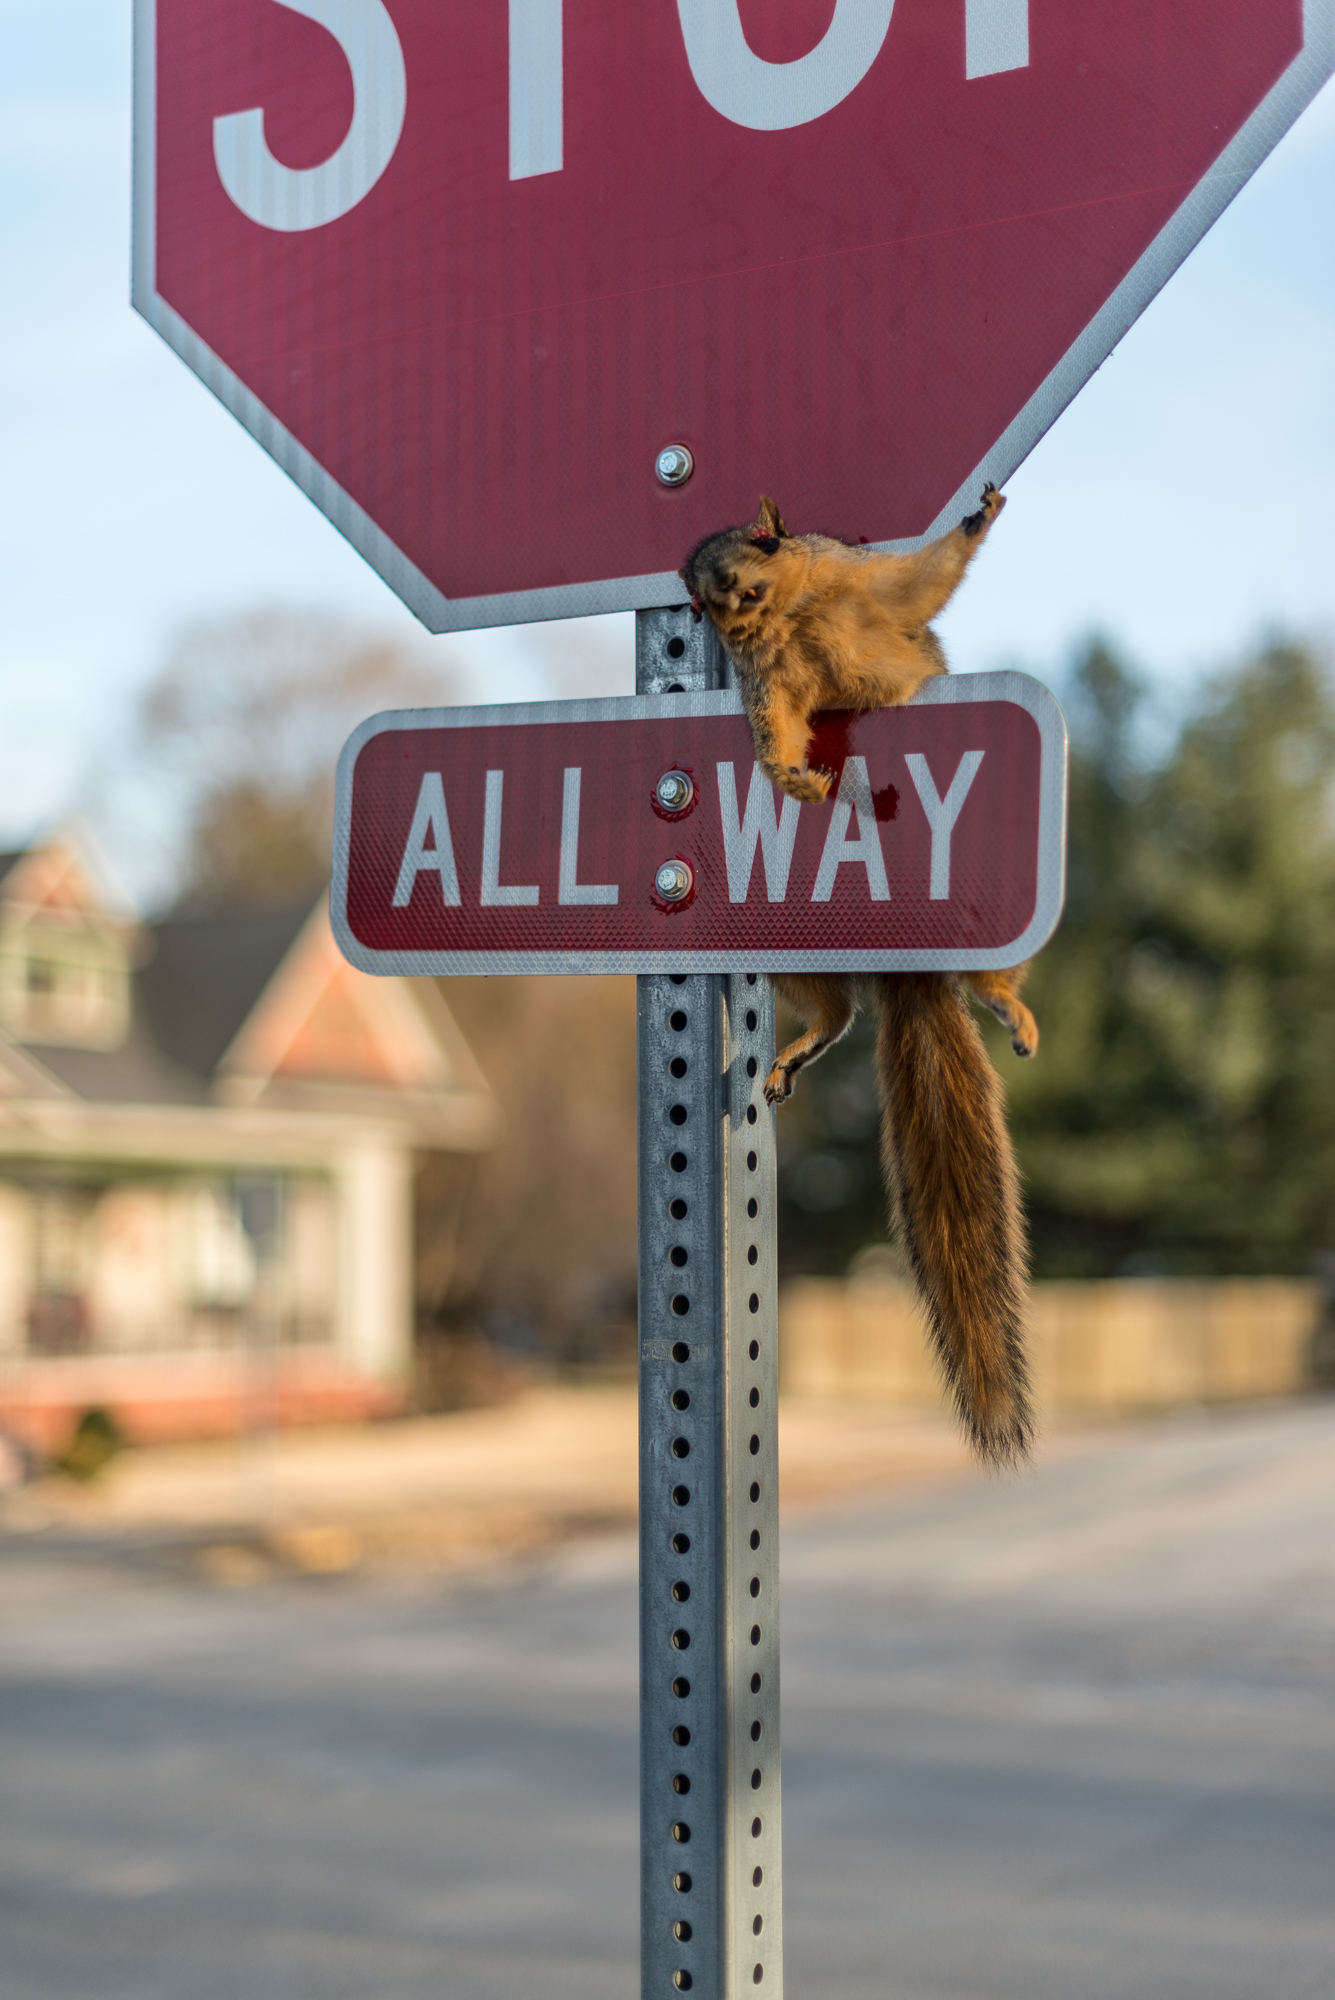 Crucified Squirrel, Carlisle, Indiana, 2017